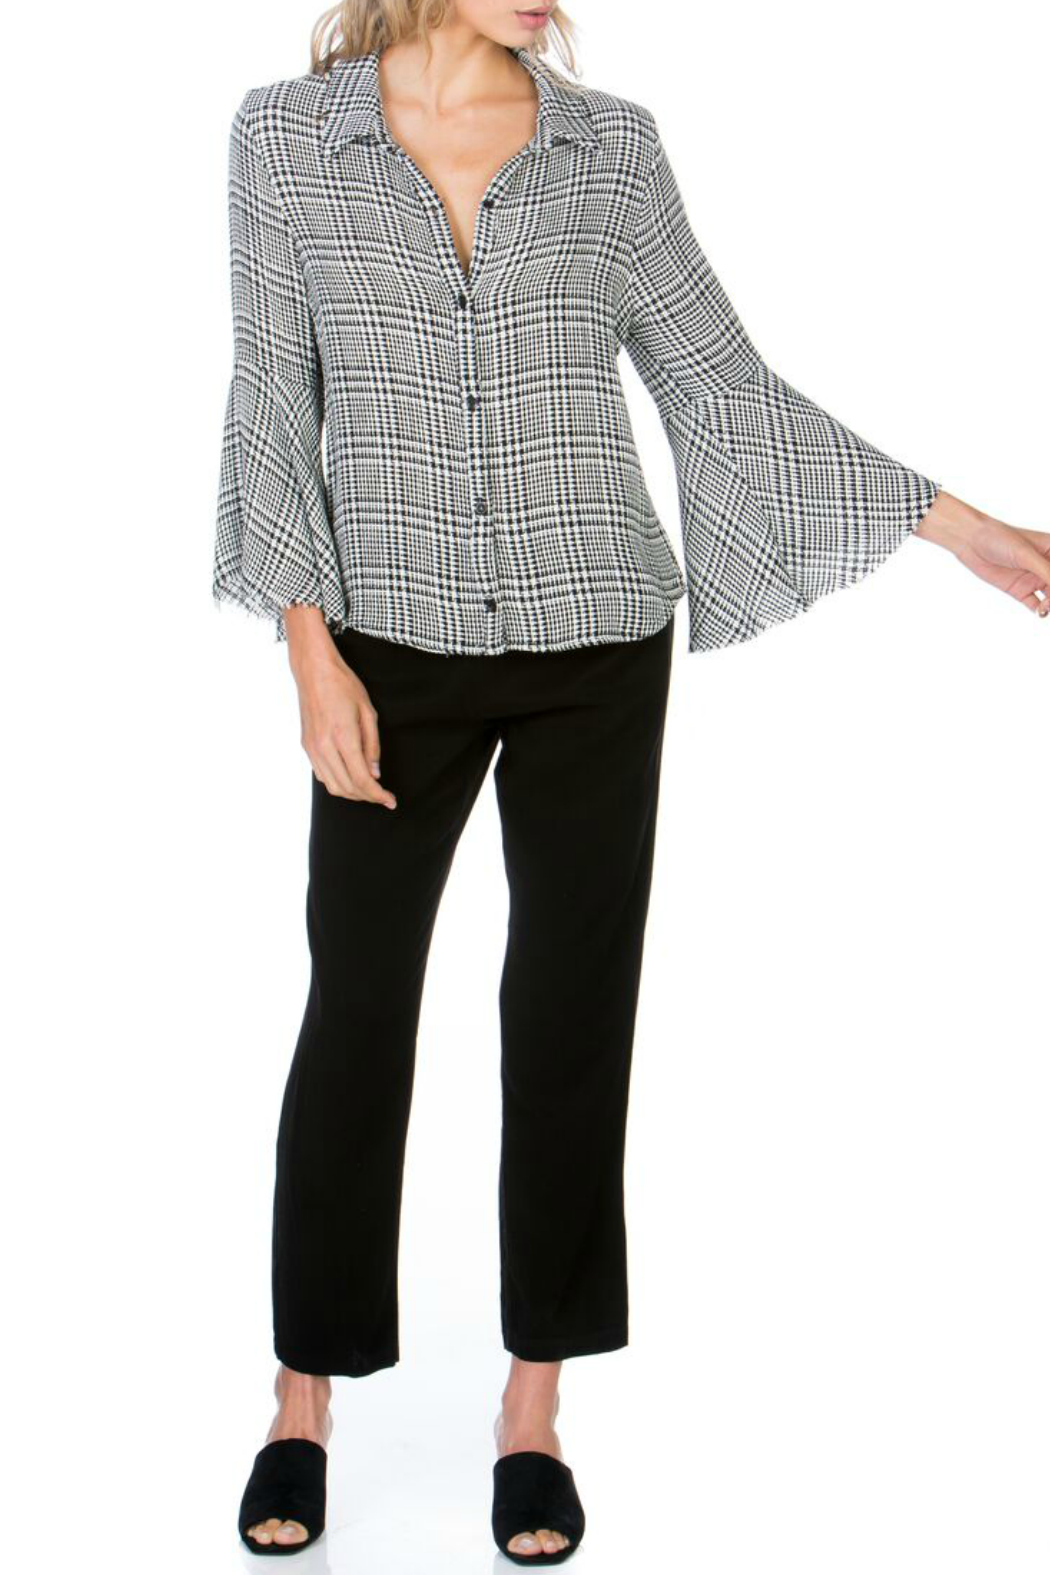 Maven West Plaid Button Up Bell Sleeve Top - Main Image